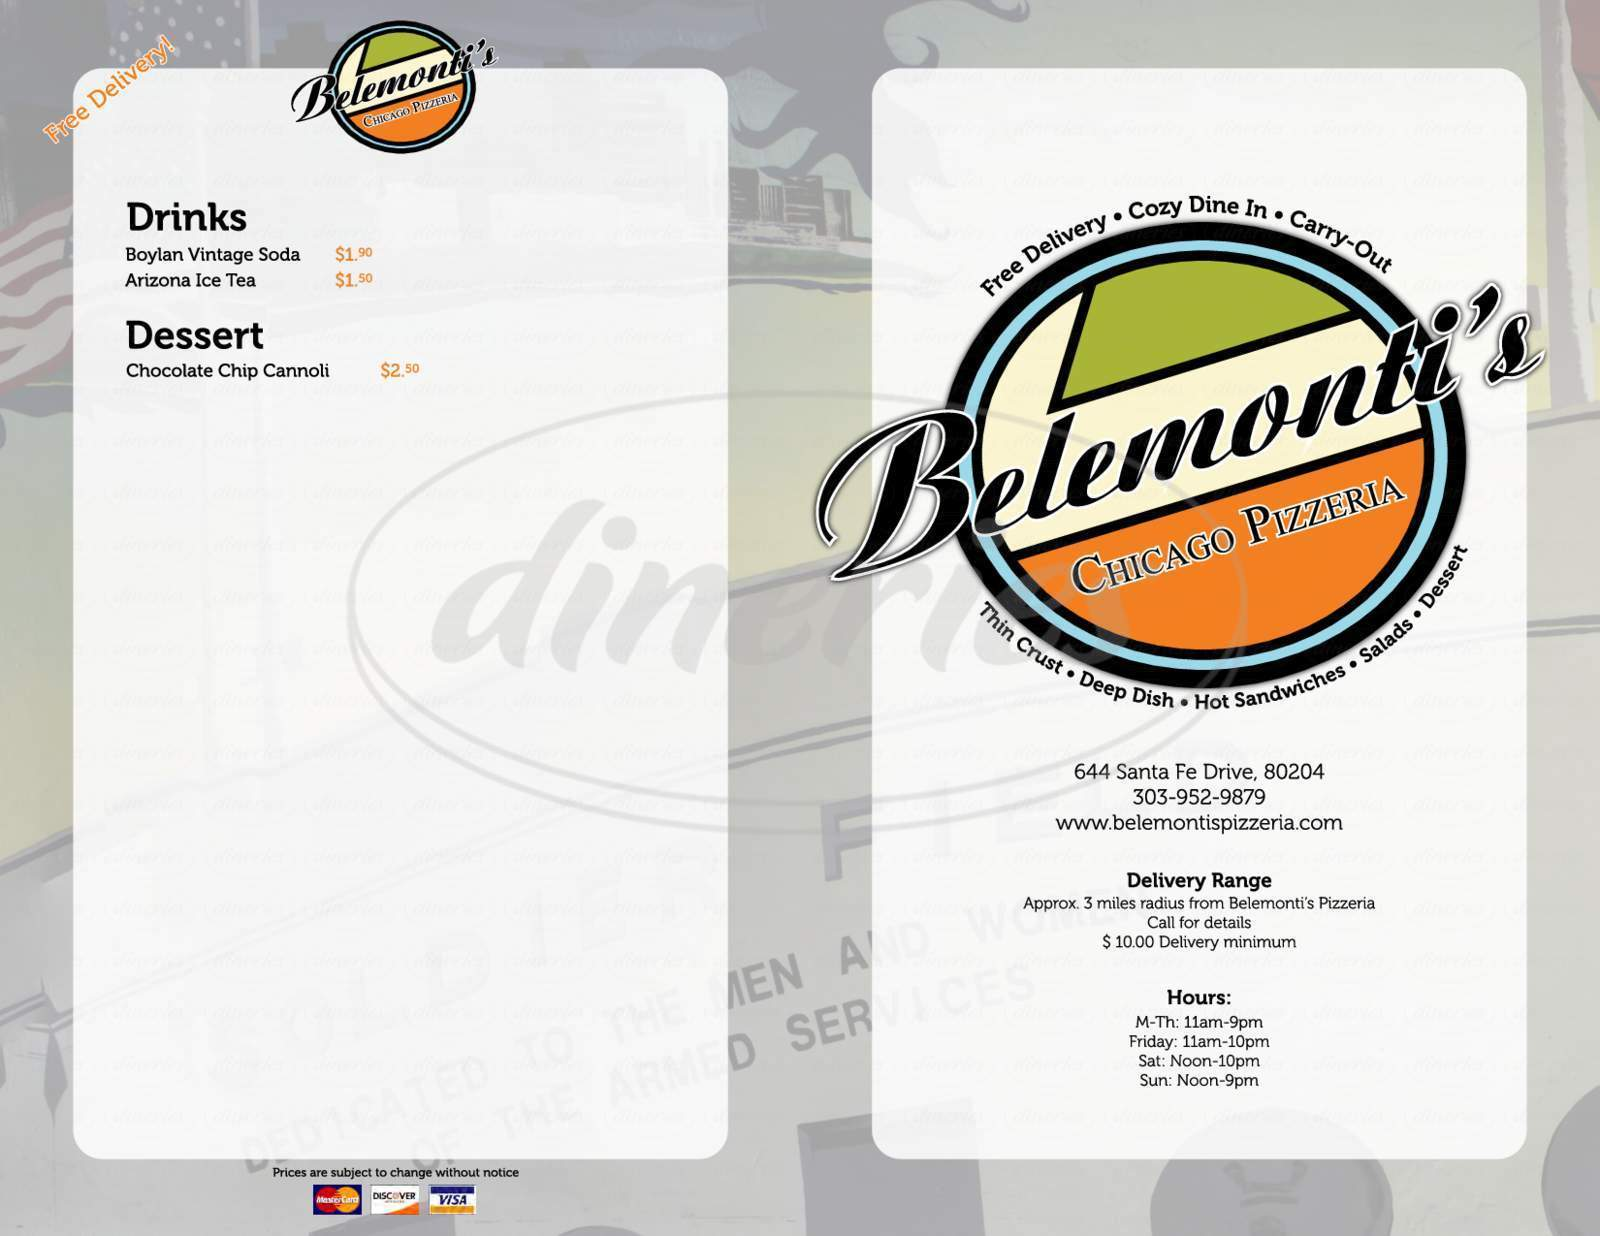 menu for Belemonti's Chicago Pizzeria